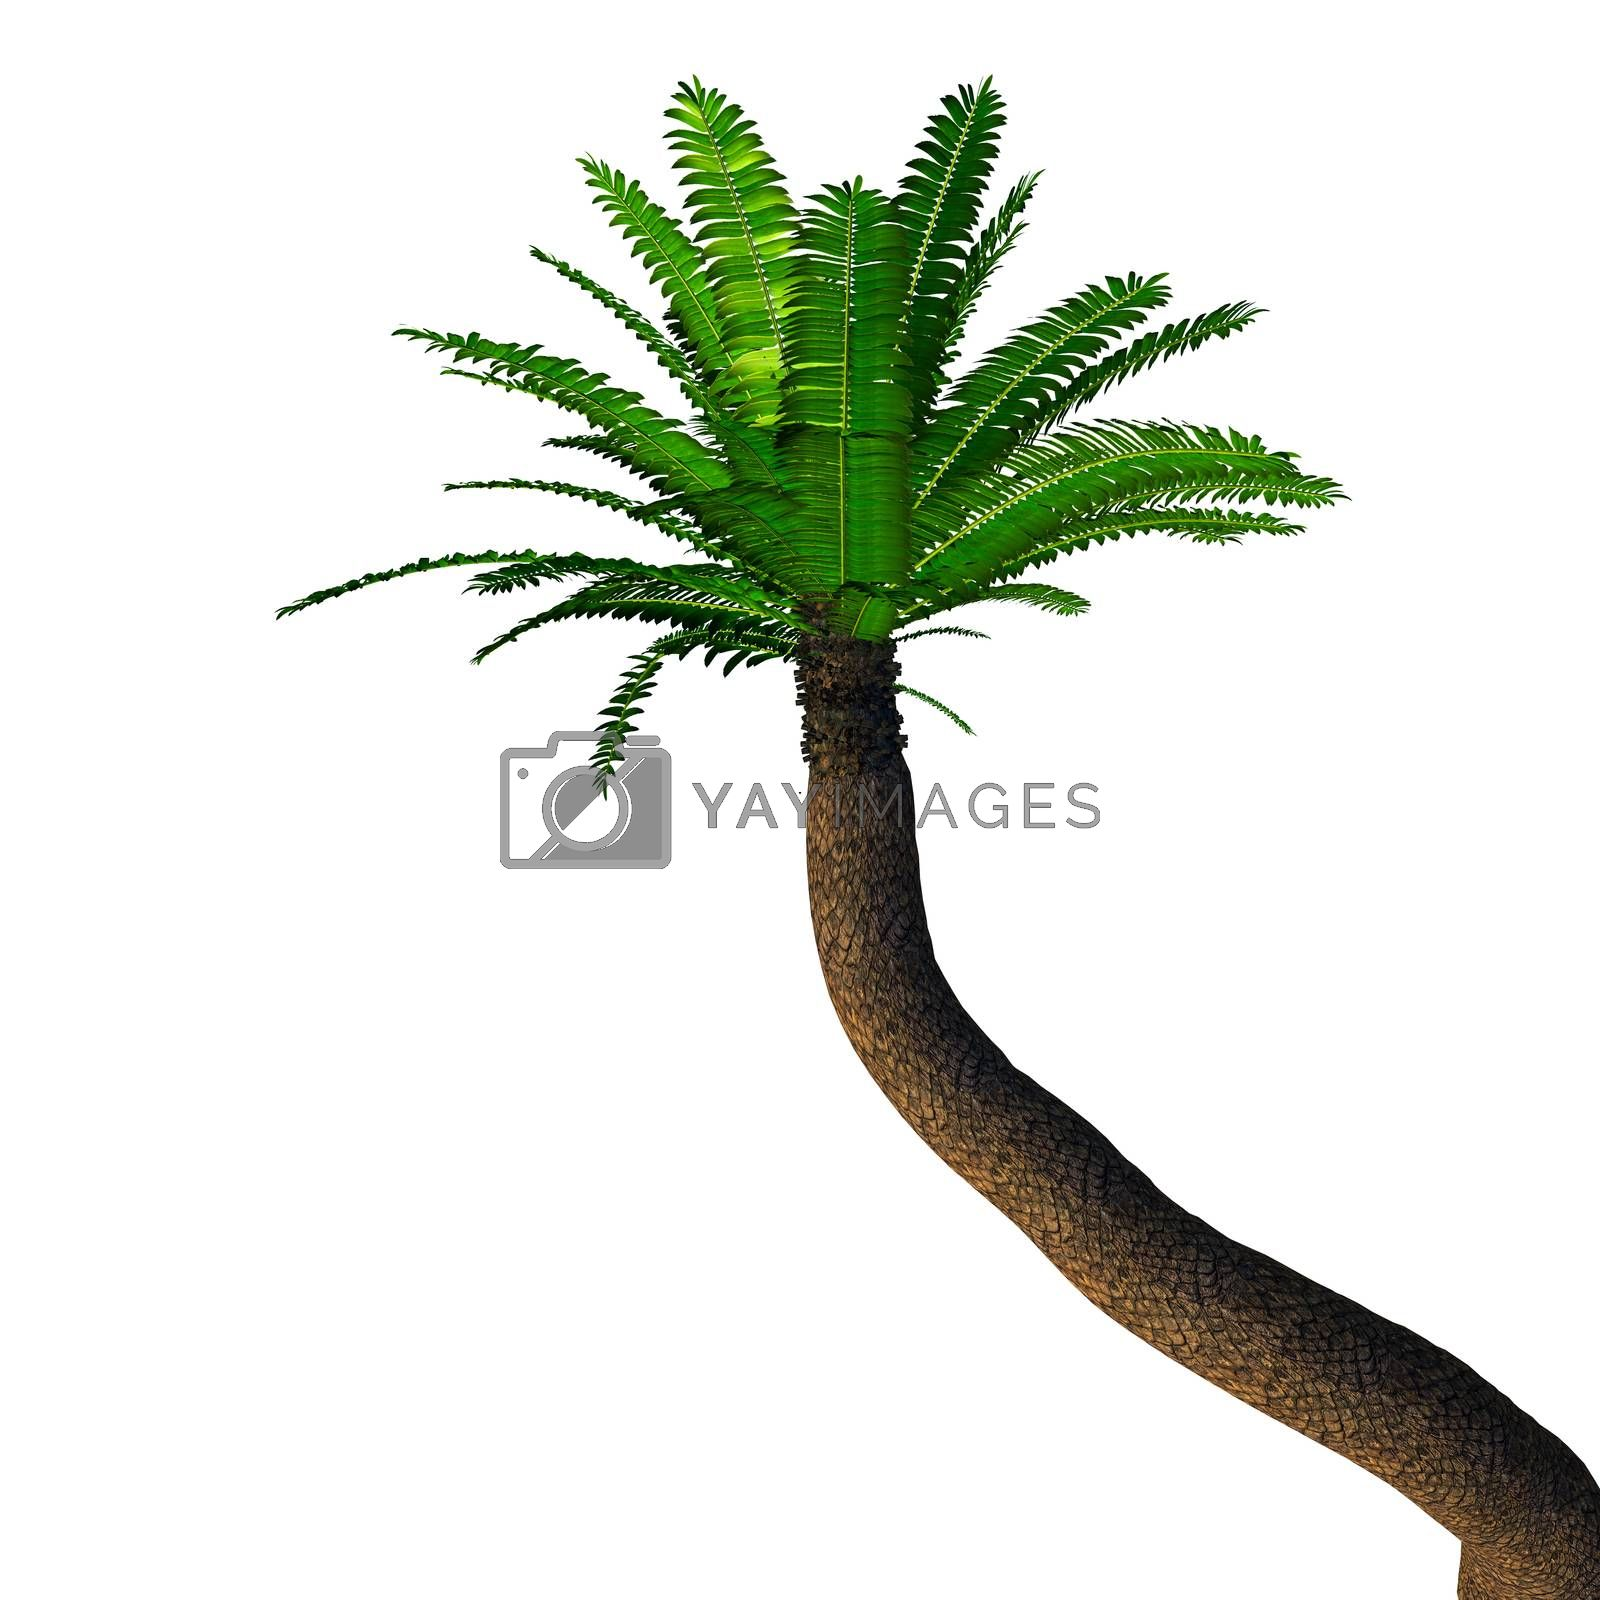 Cycads have a stout woody trunk with a crown of evergreen leaves and were more numerous in prehistoric times.